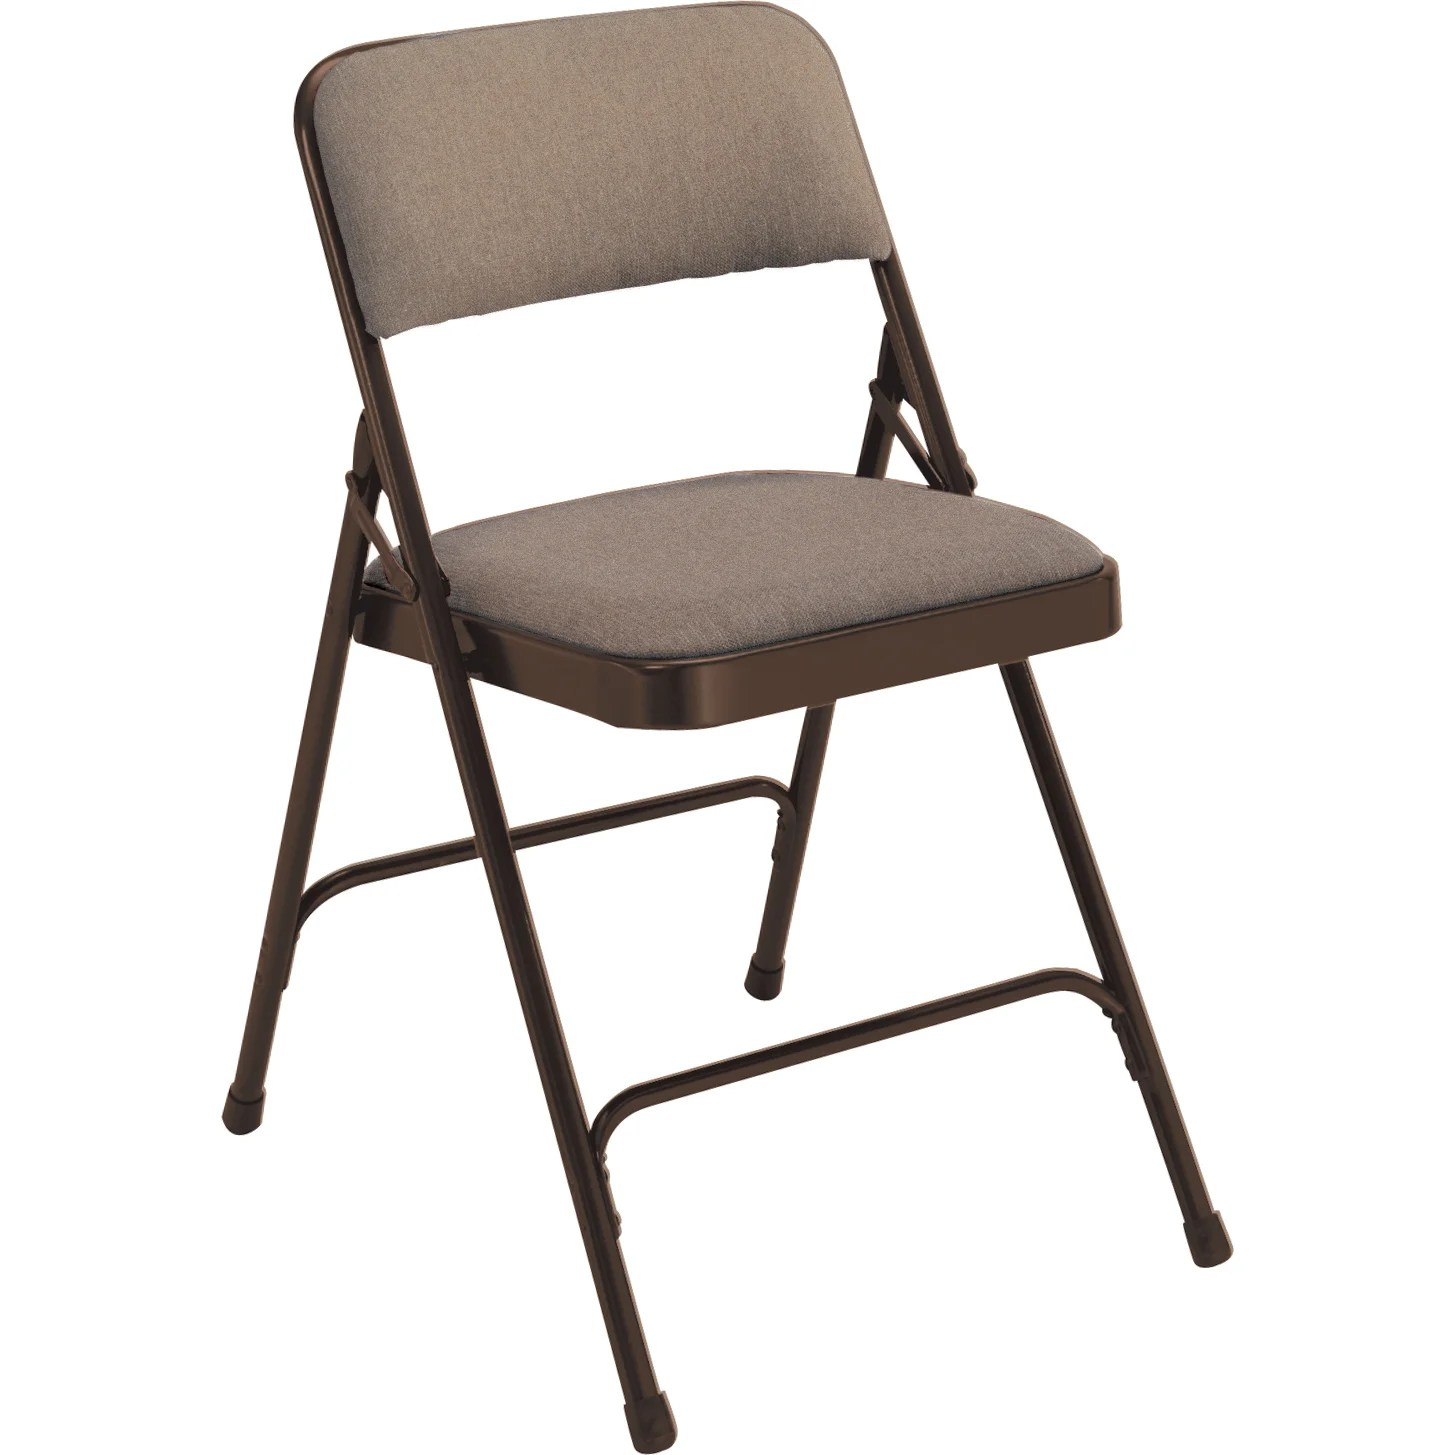 public seating chairs acrylic chair legs national 2200 series upholstered folding